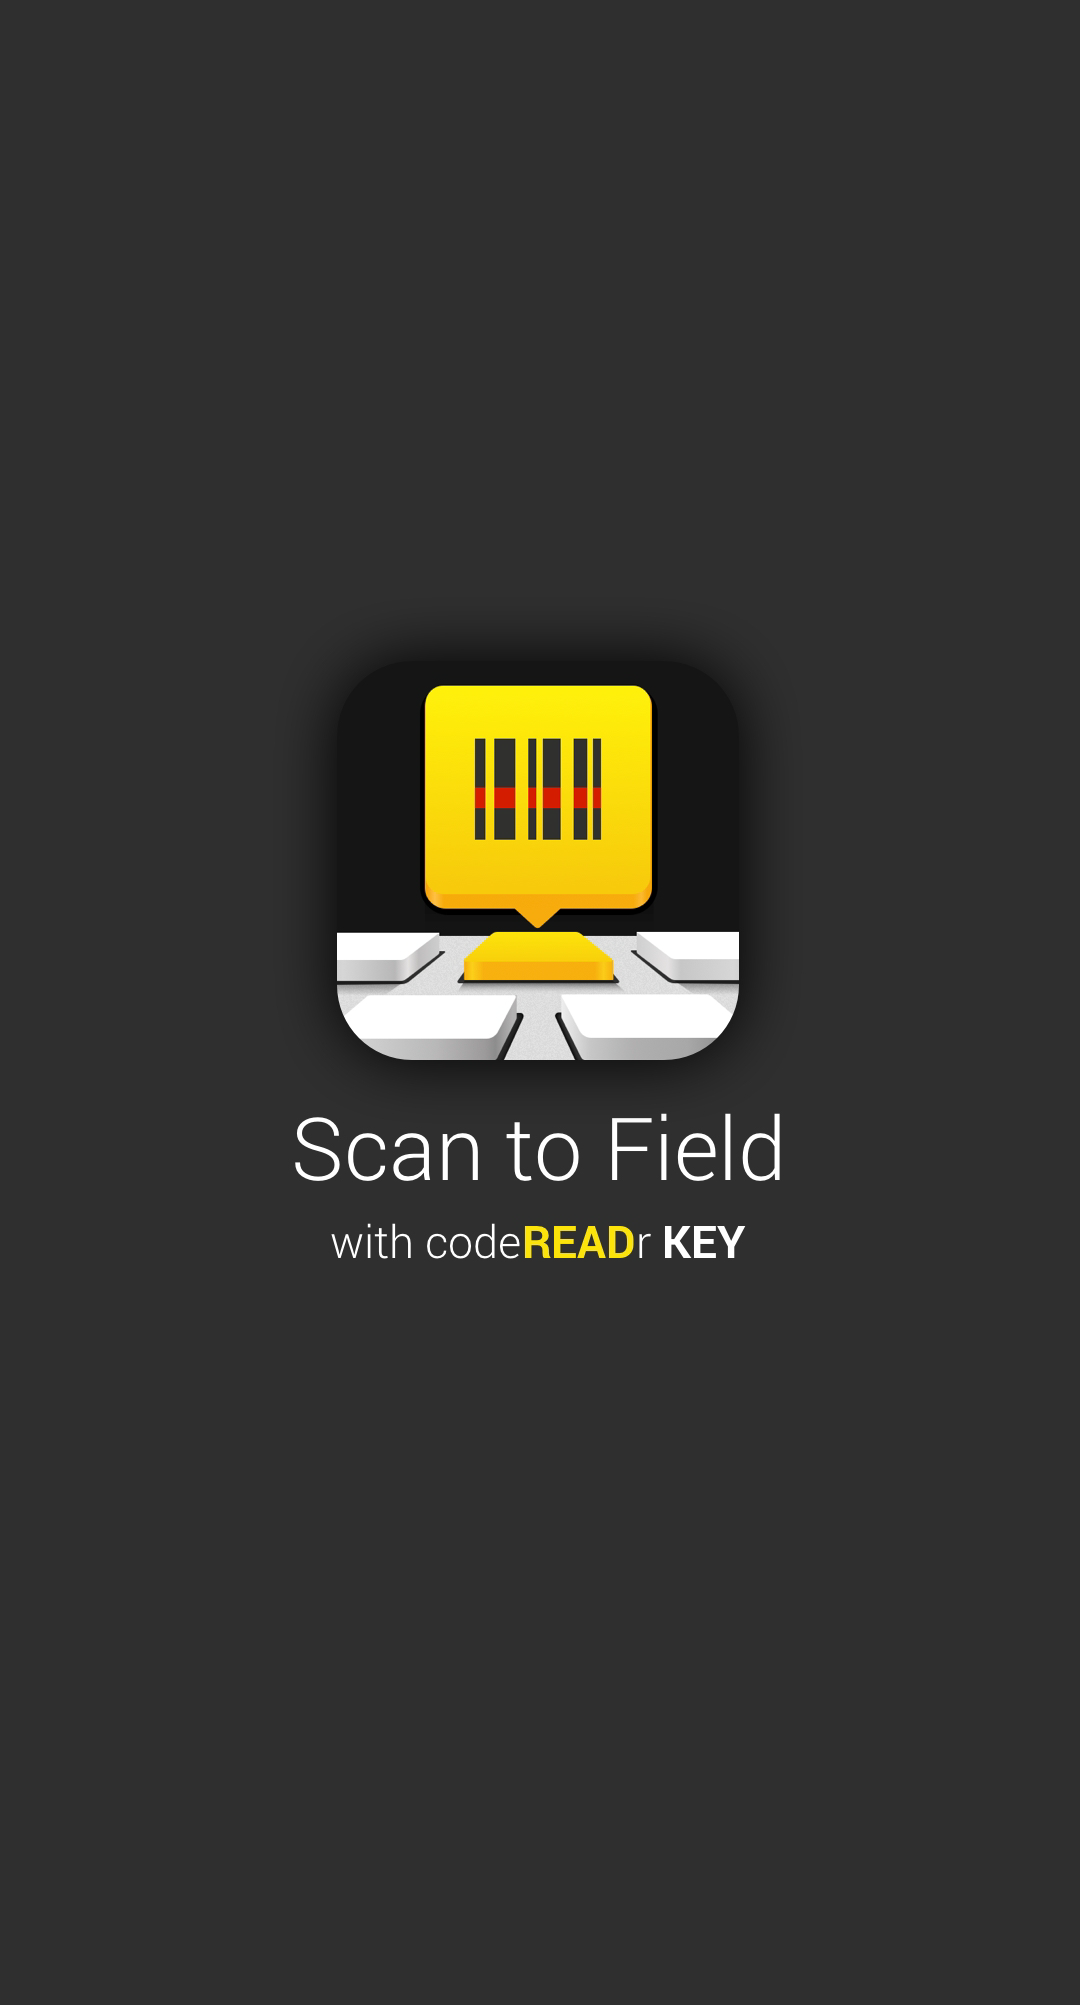 codereadr key splash screen